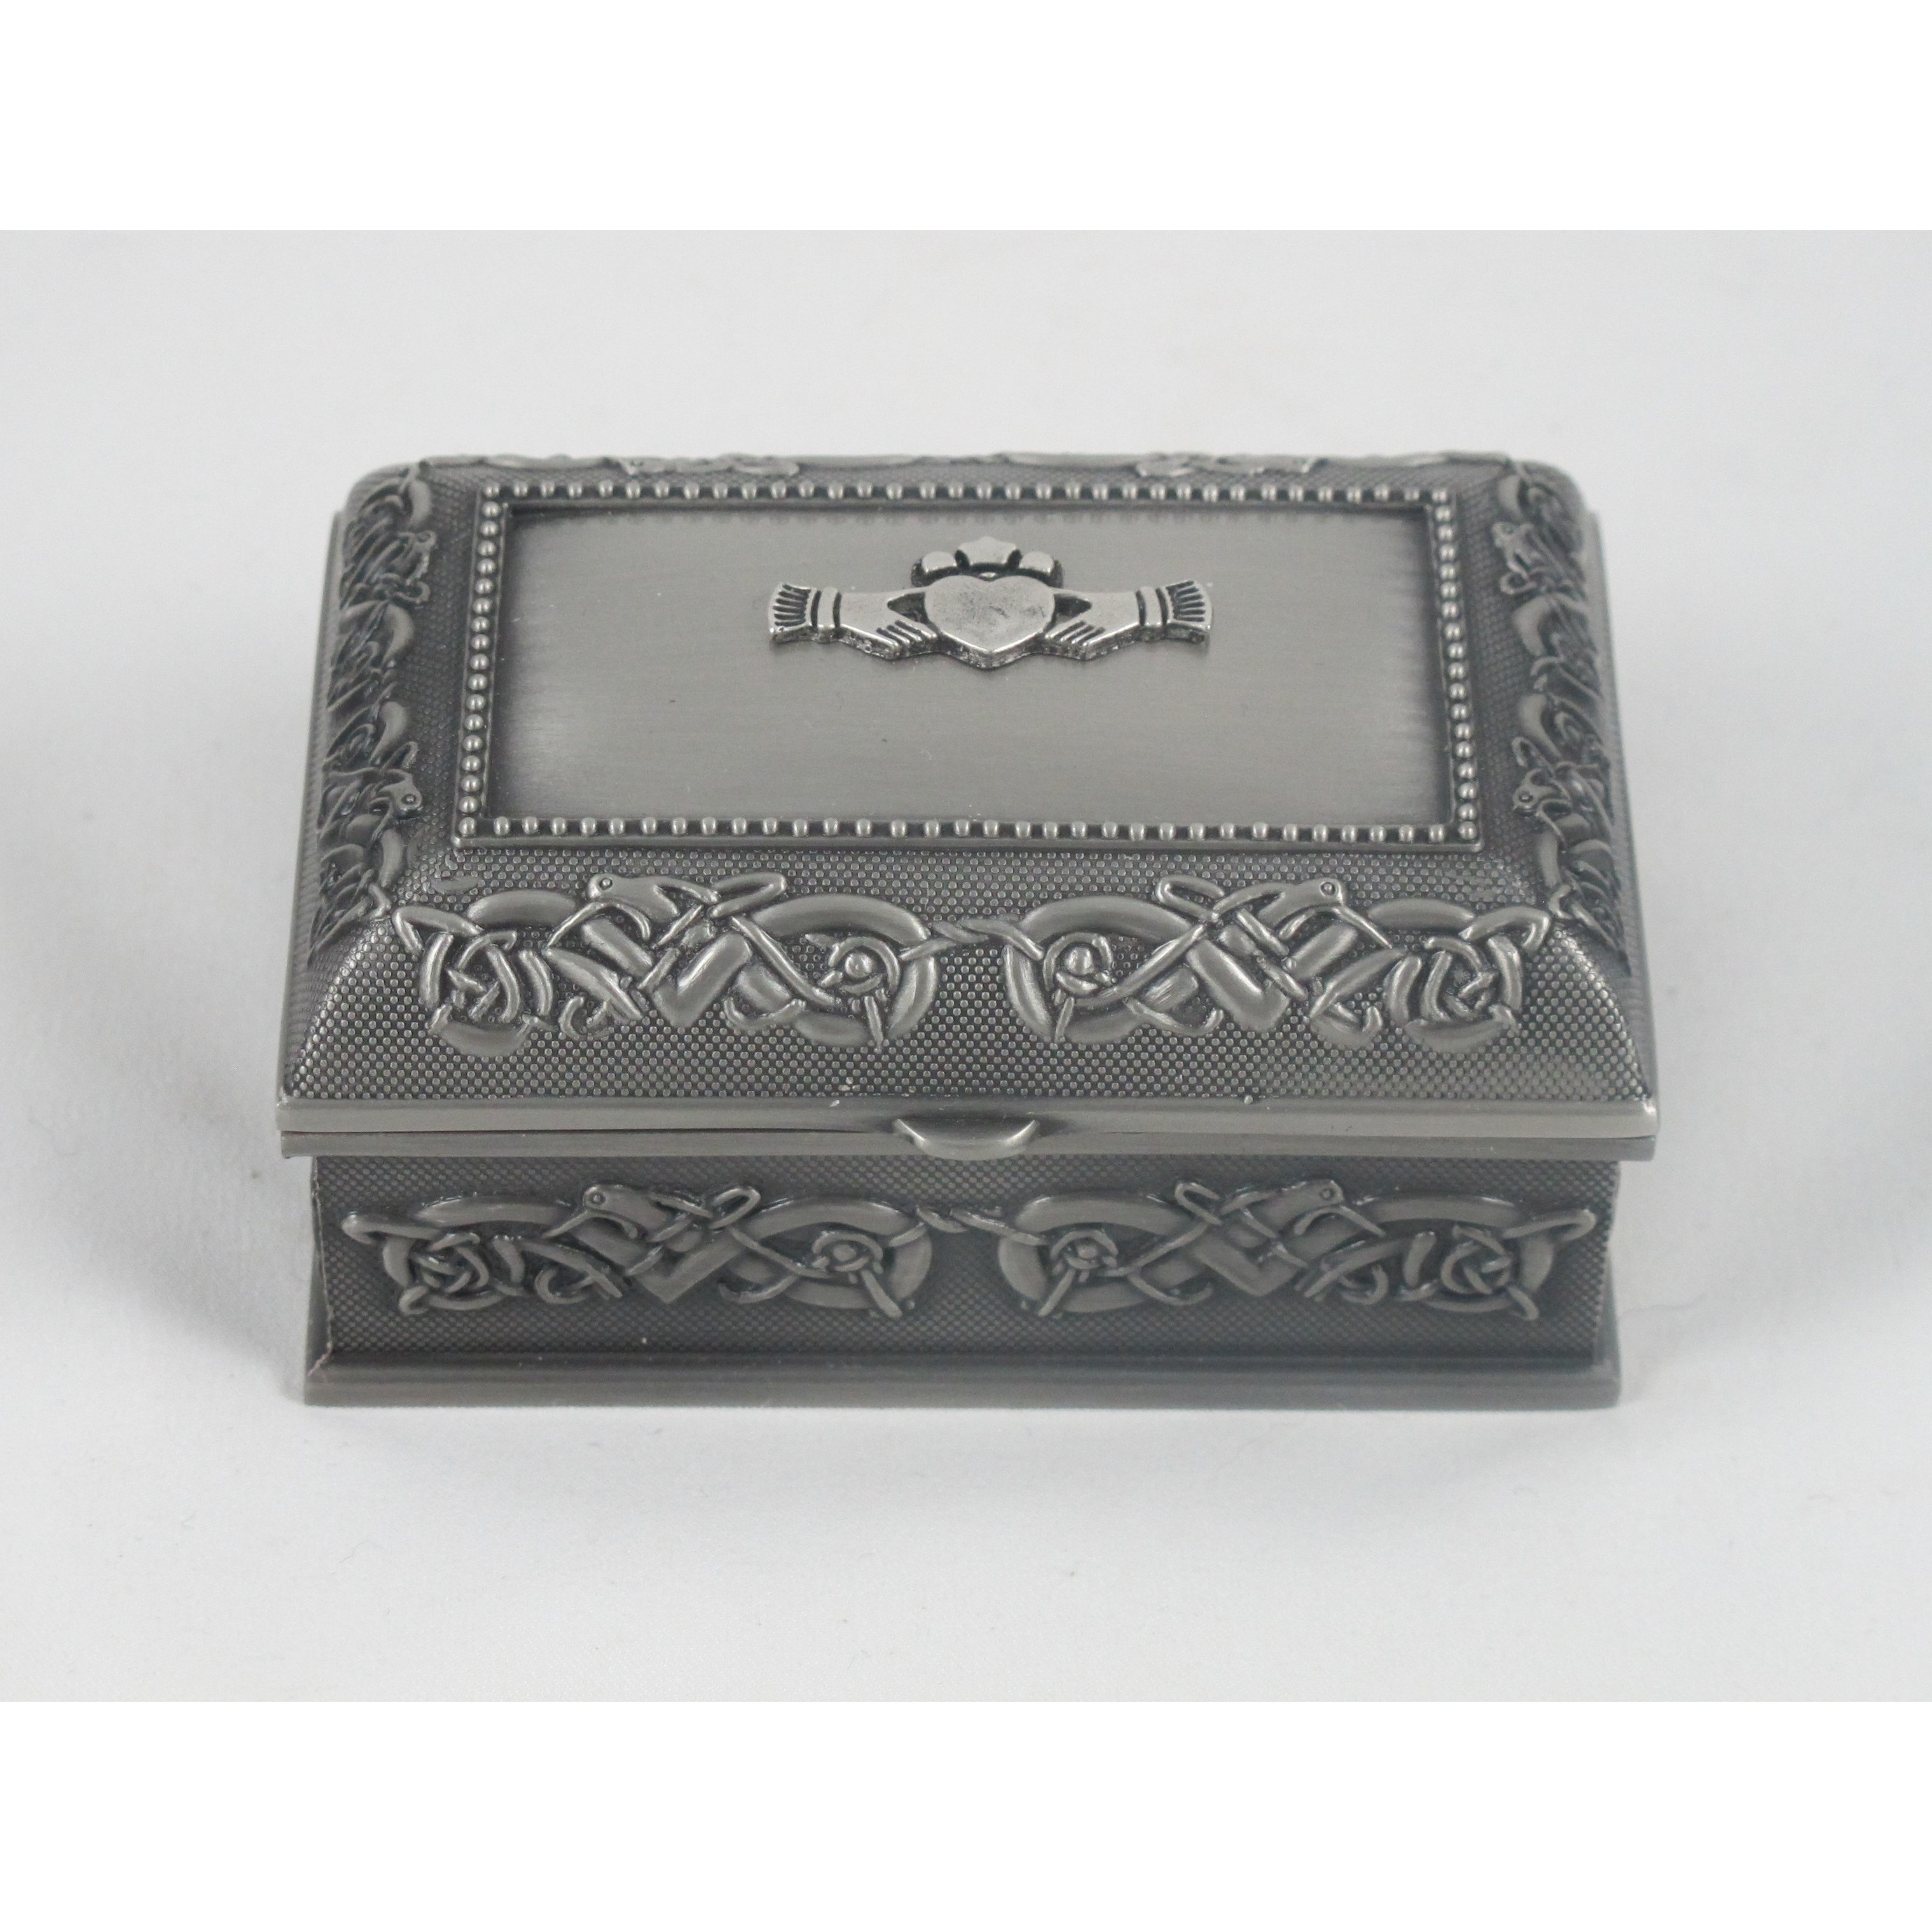 Mullingar Pewter Small Claddagh Pewter Jewelry Box